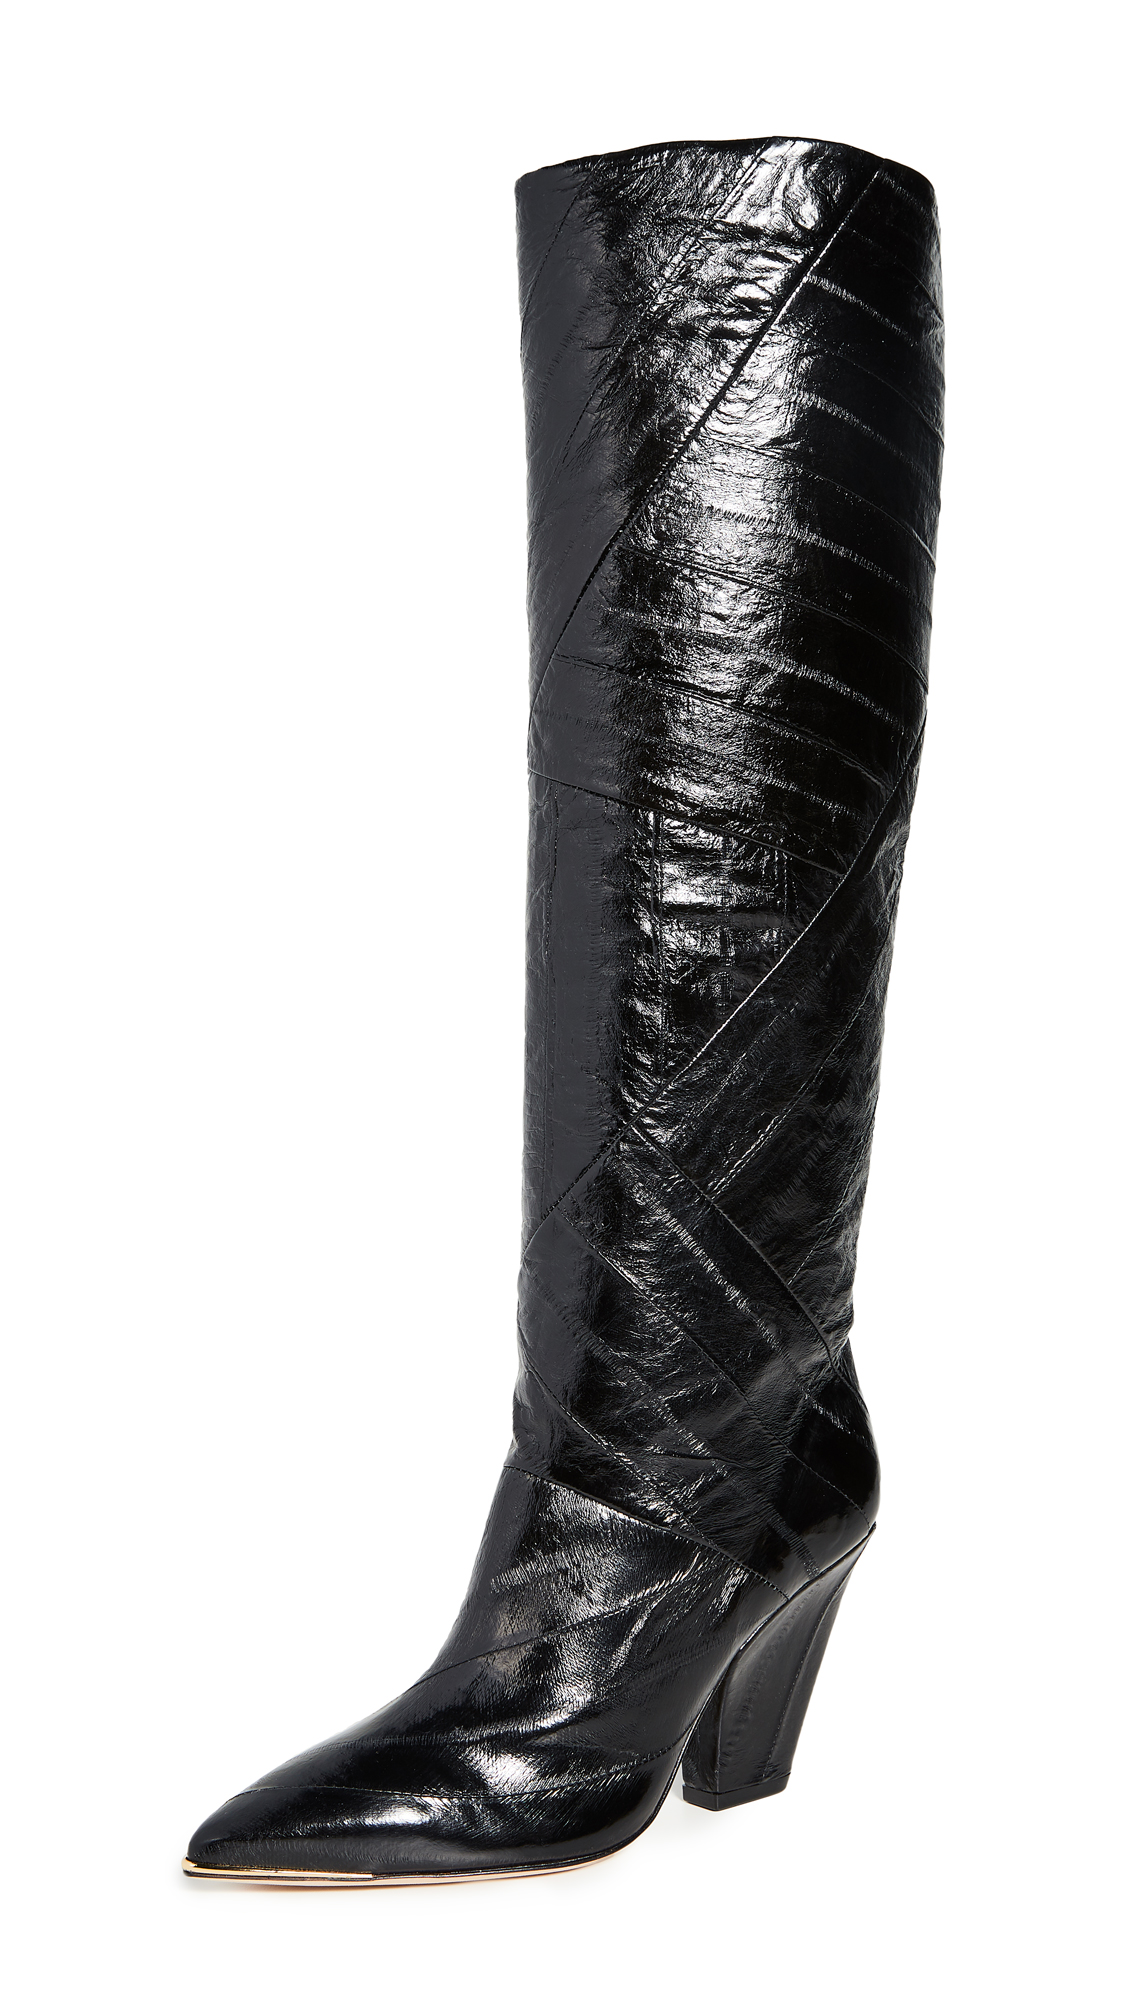 Tory Burch Lila 90mm Boots - 50% Off Sale